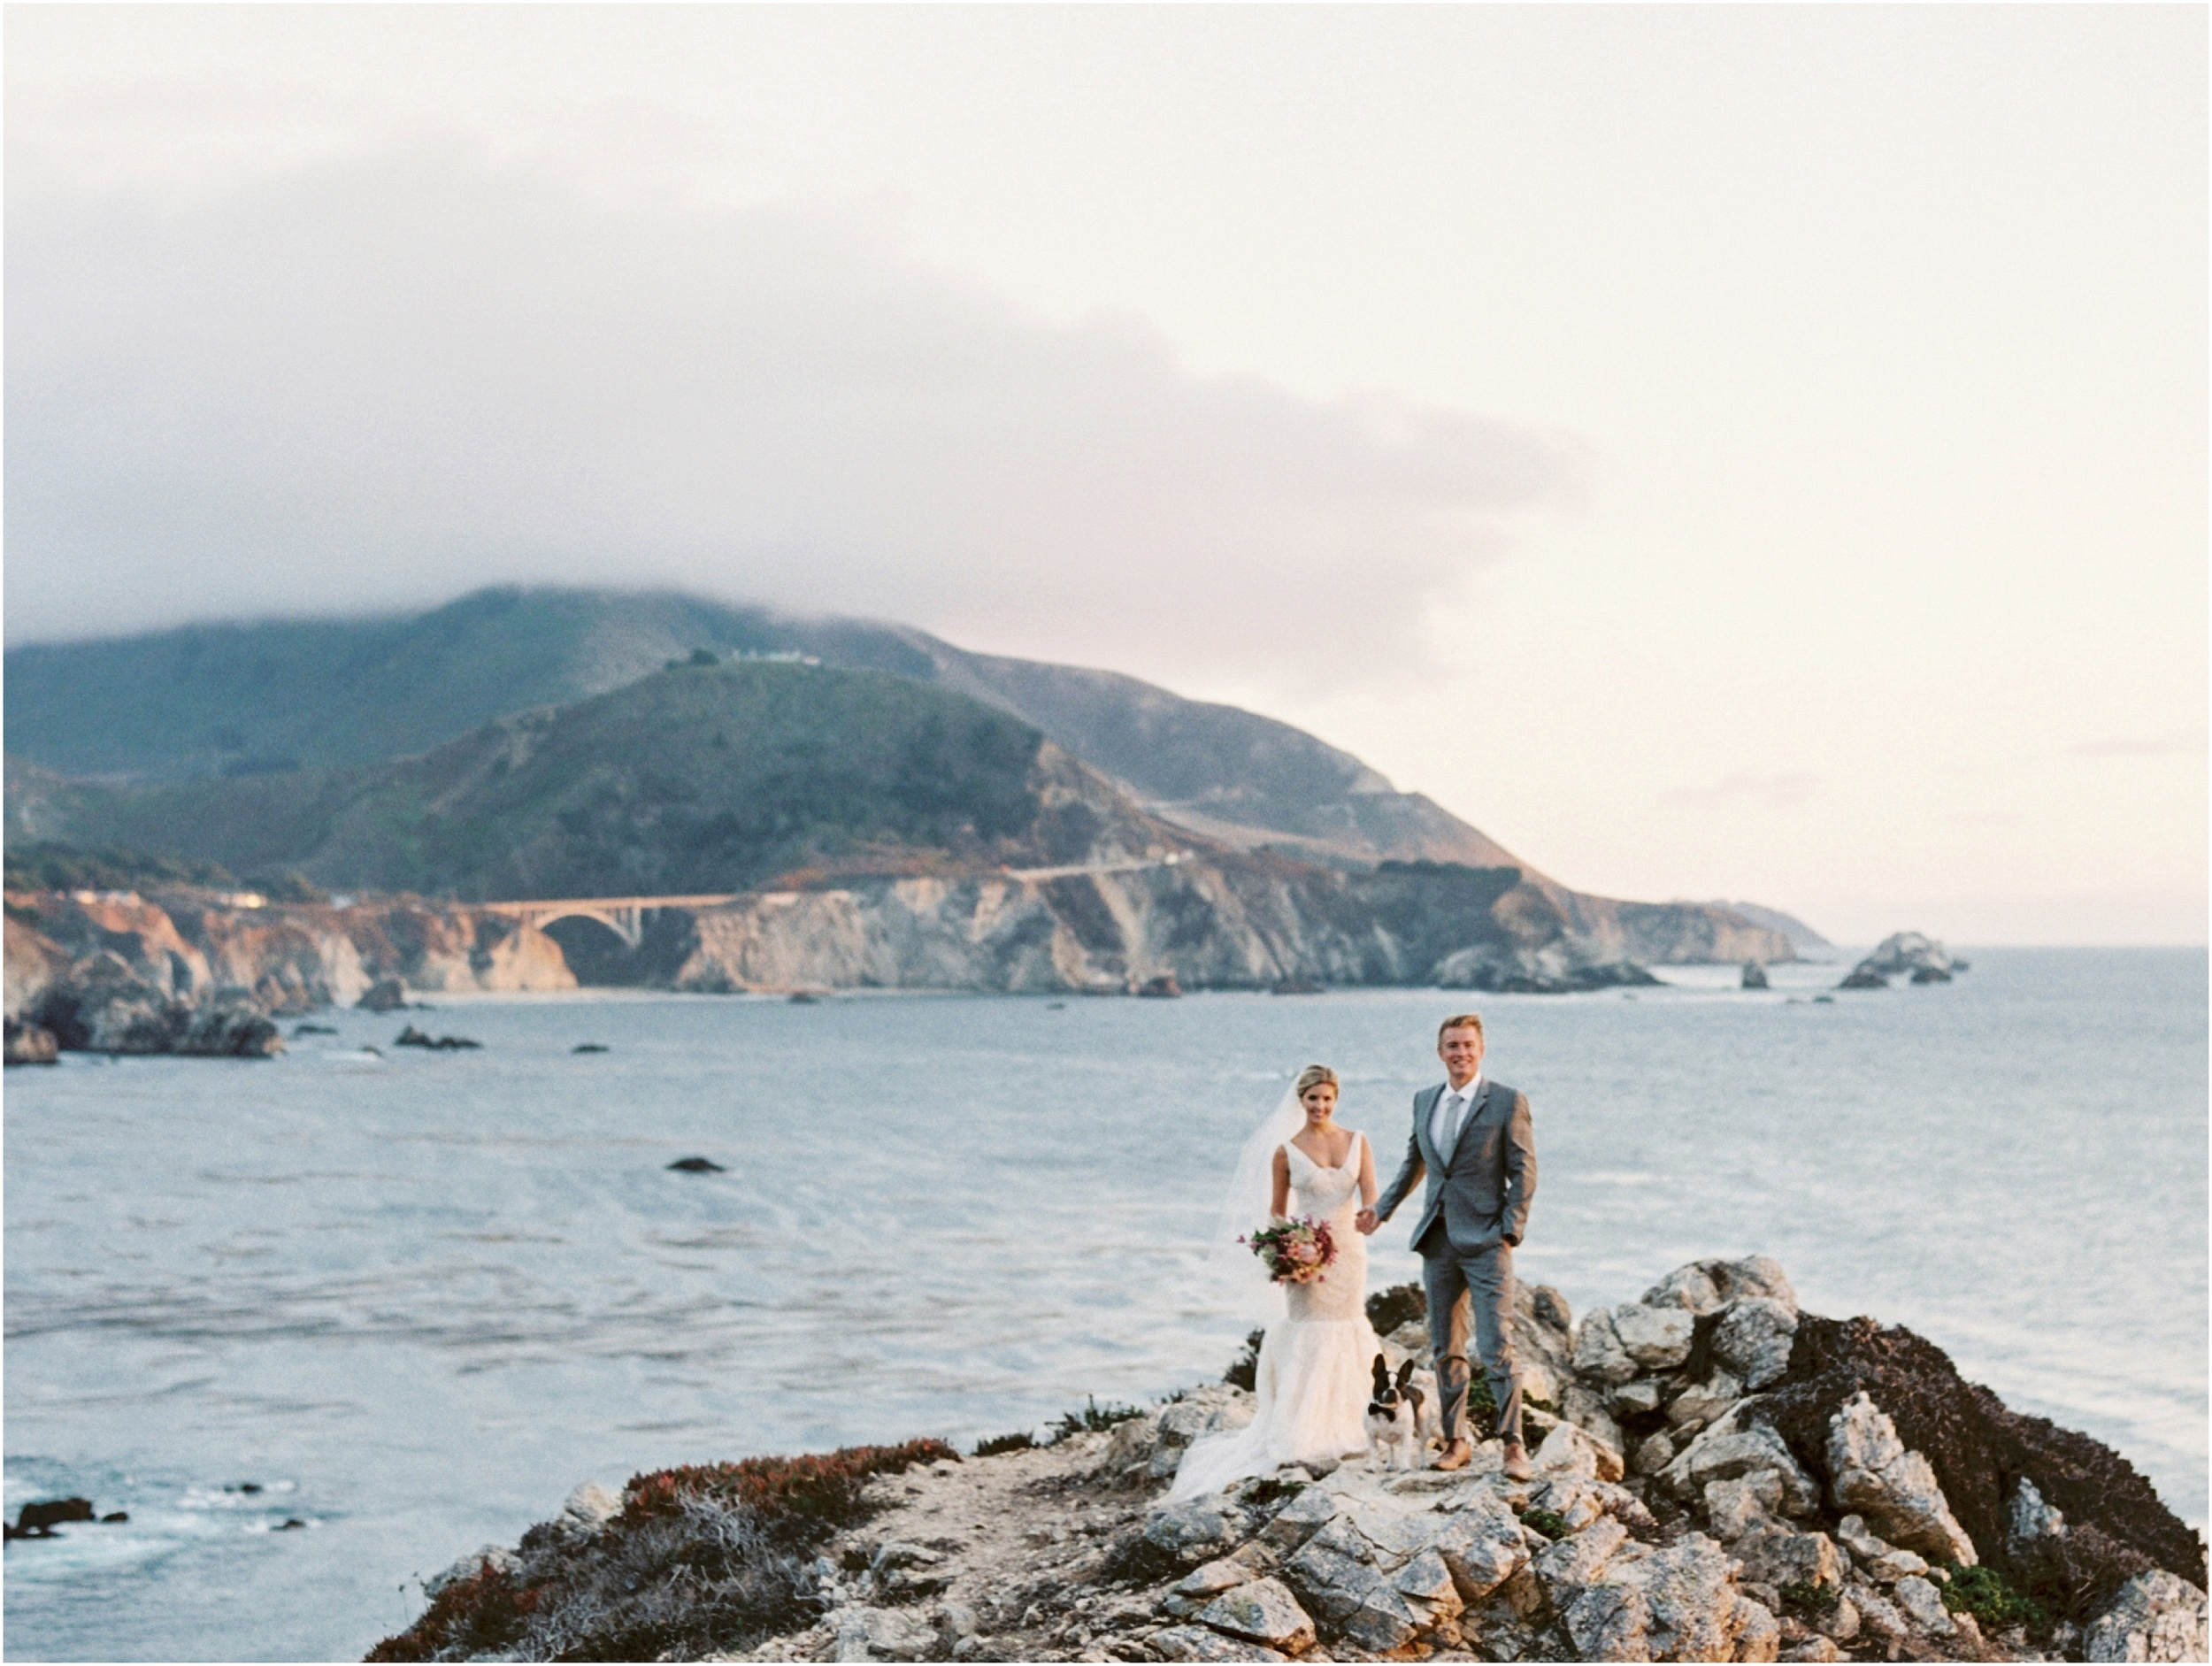 blueberryphotography.com | San Francisco Based Wedding & Lifestyle Photographer